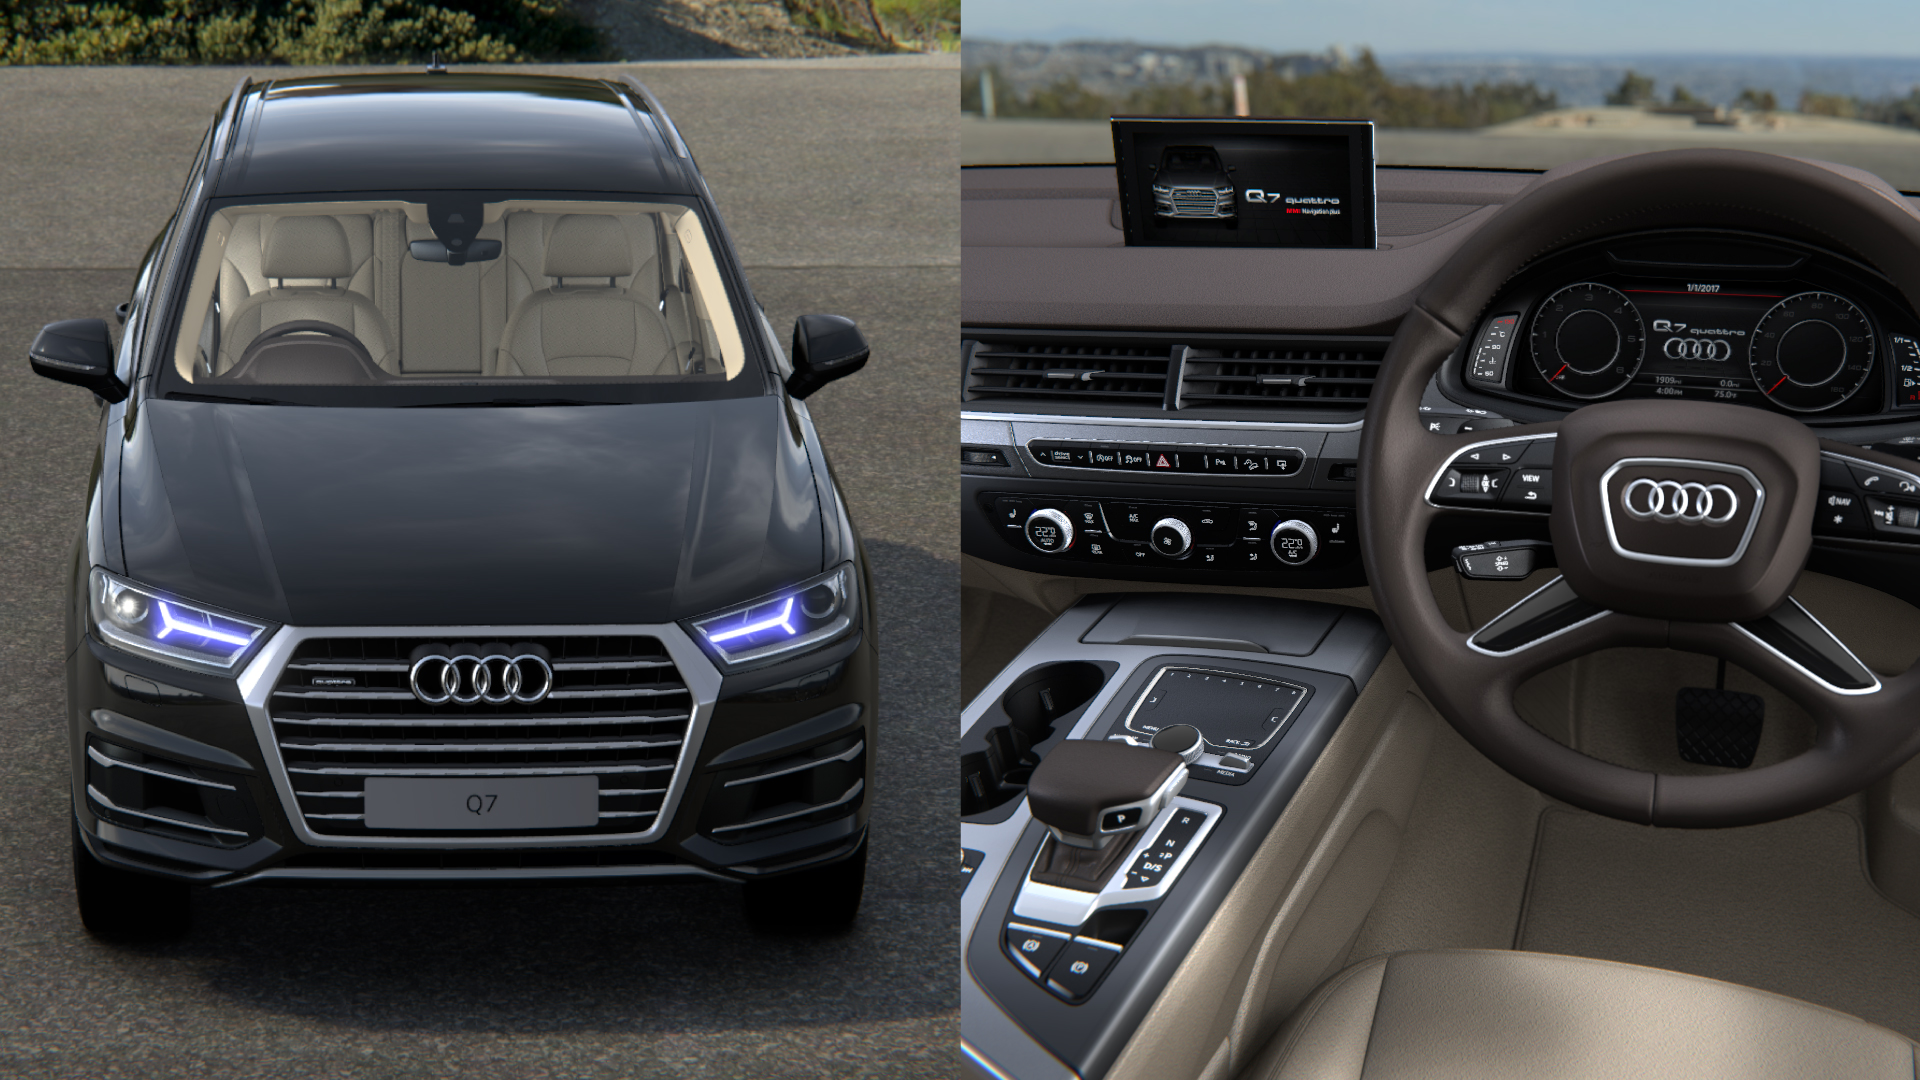 2019 Audi Q7 | 3 Optional Extras Worth Considering